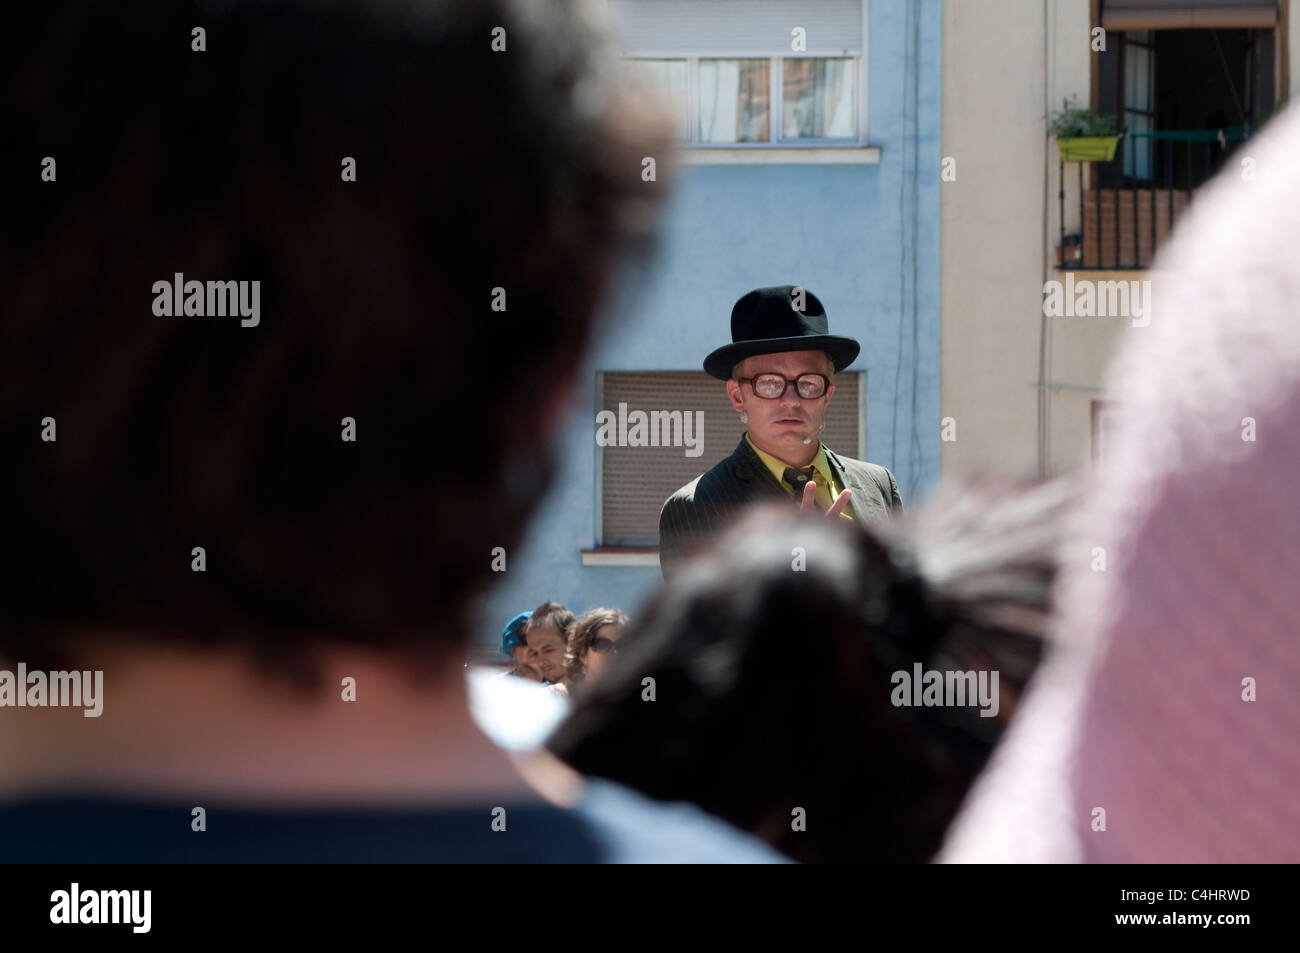 Performer, The Slampampers, San Isidro Festival, Plaza de la Corrala in Lavapies, Madrid, Spain - Stock Image